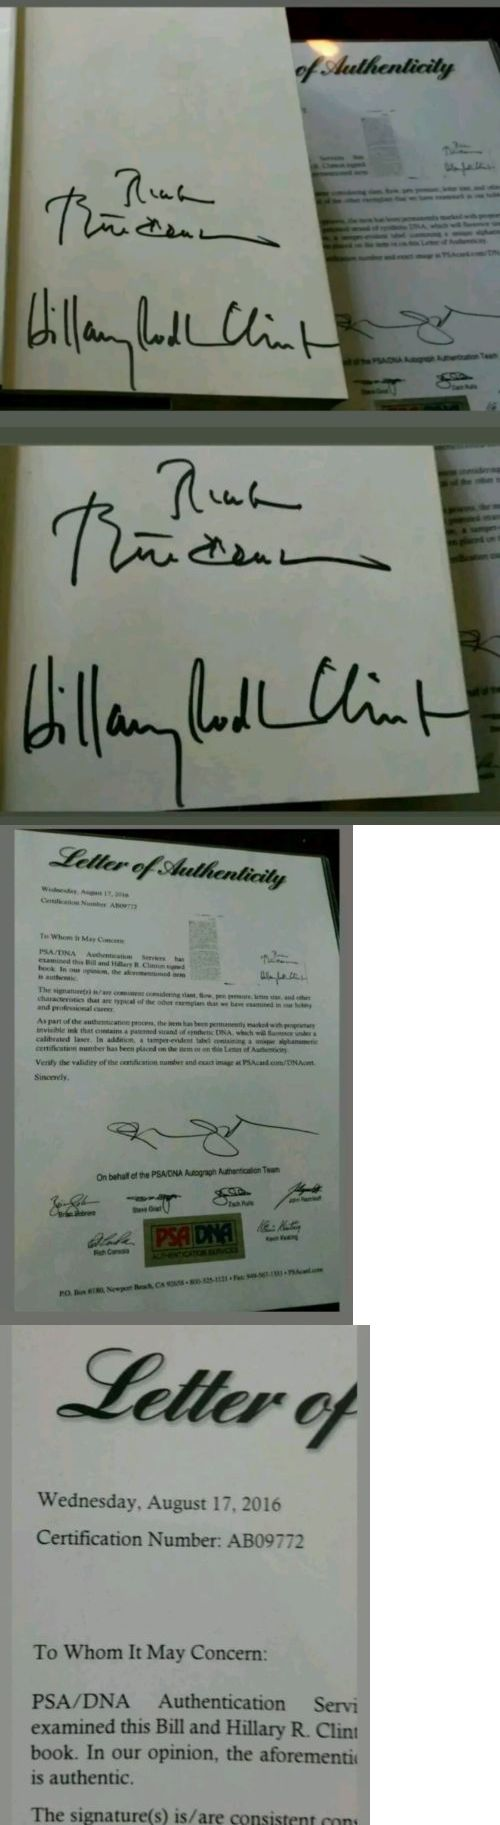 Bill Clinton: Psa Dna President Bill And Hillary Clinton Signed Book My Life! 1St Ed Full Sigs -> BUY IT NOW ONLY: $399 on eBay!